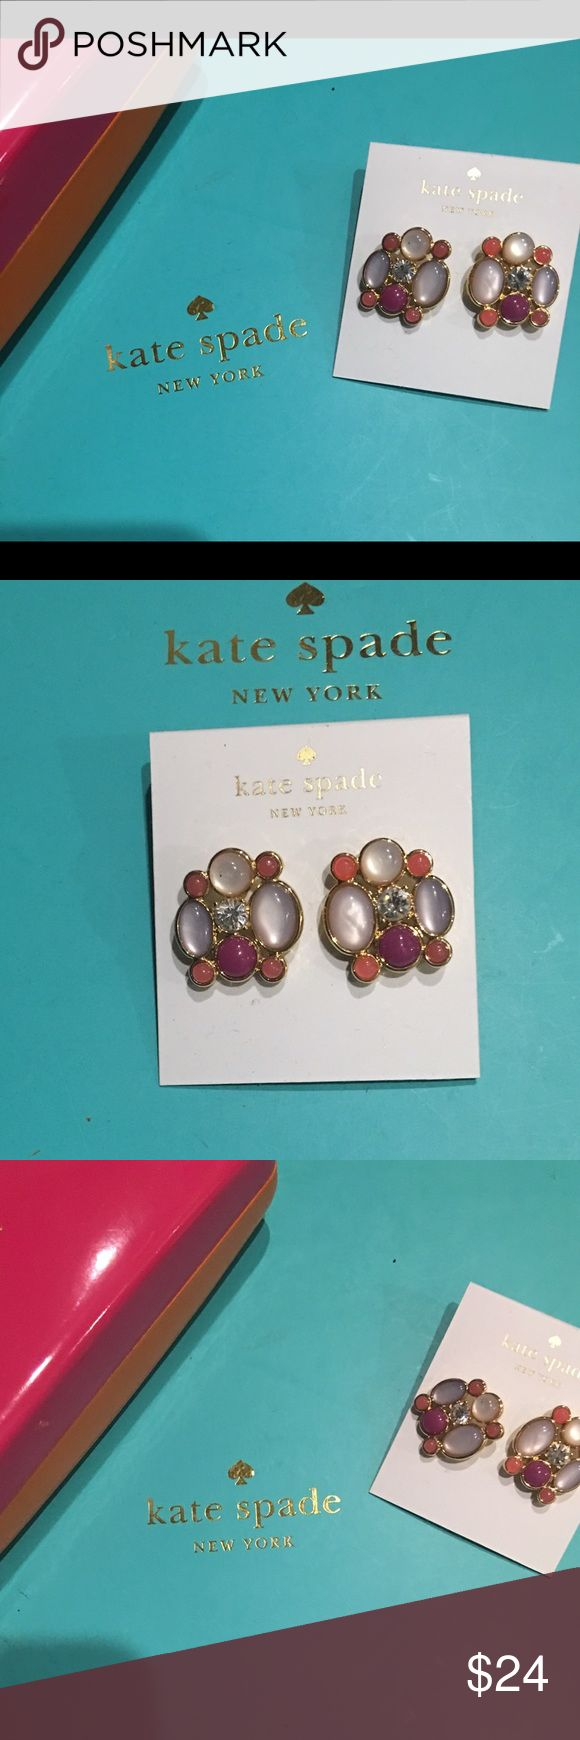 NWT Kate Spade Vintage Look Earrings Too Gorgeous for words! Comes with Kate Spade Jewelry Dust Bags. kate spade Jewelry Earrings